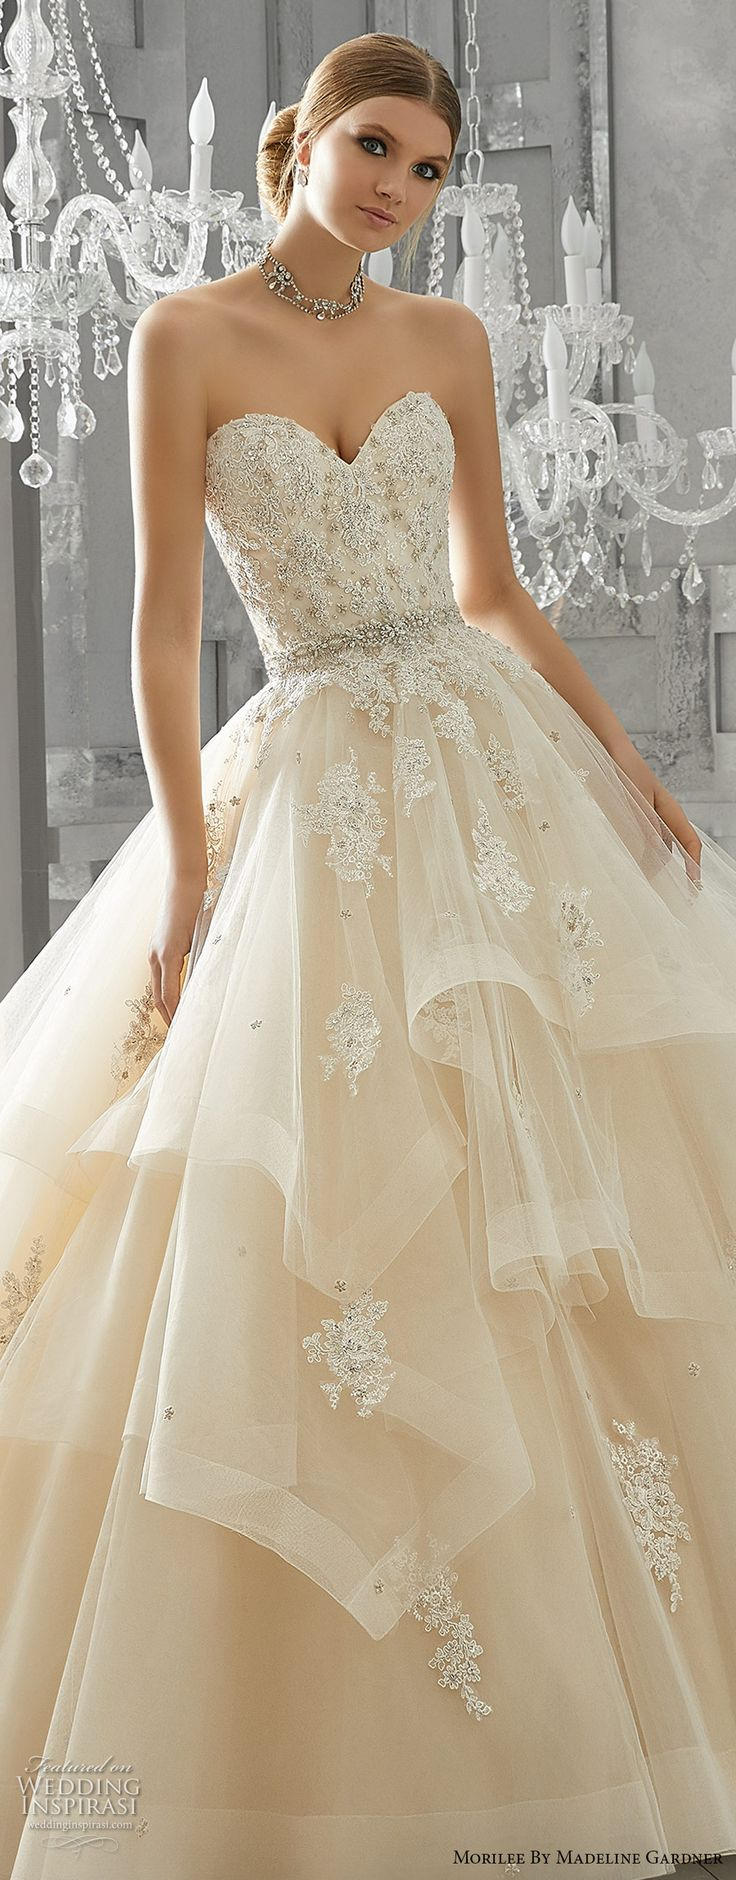 933 best Colored wedding gowns/ball gowns images on Pinterest ...